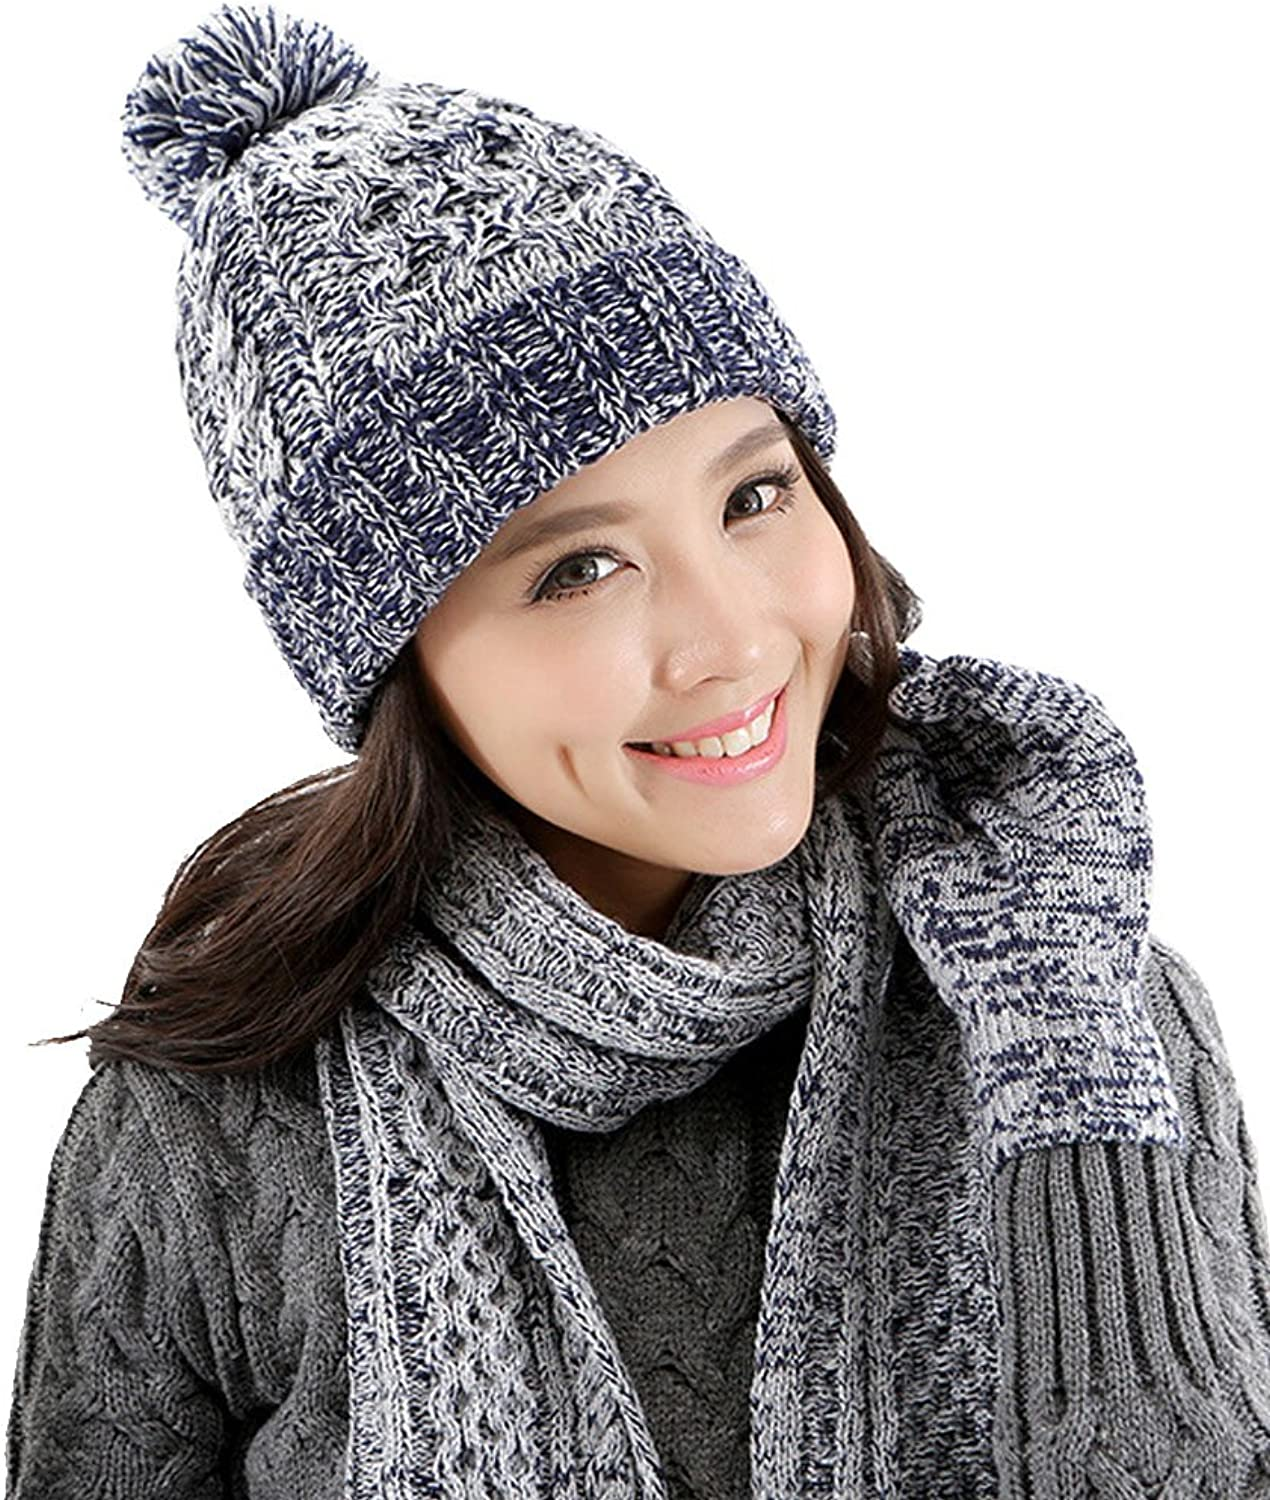 Kmover Women's 3Pieces Slouchy Beanie Winter Warm Knit Hat Cap set Christmas Gift